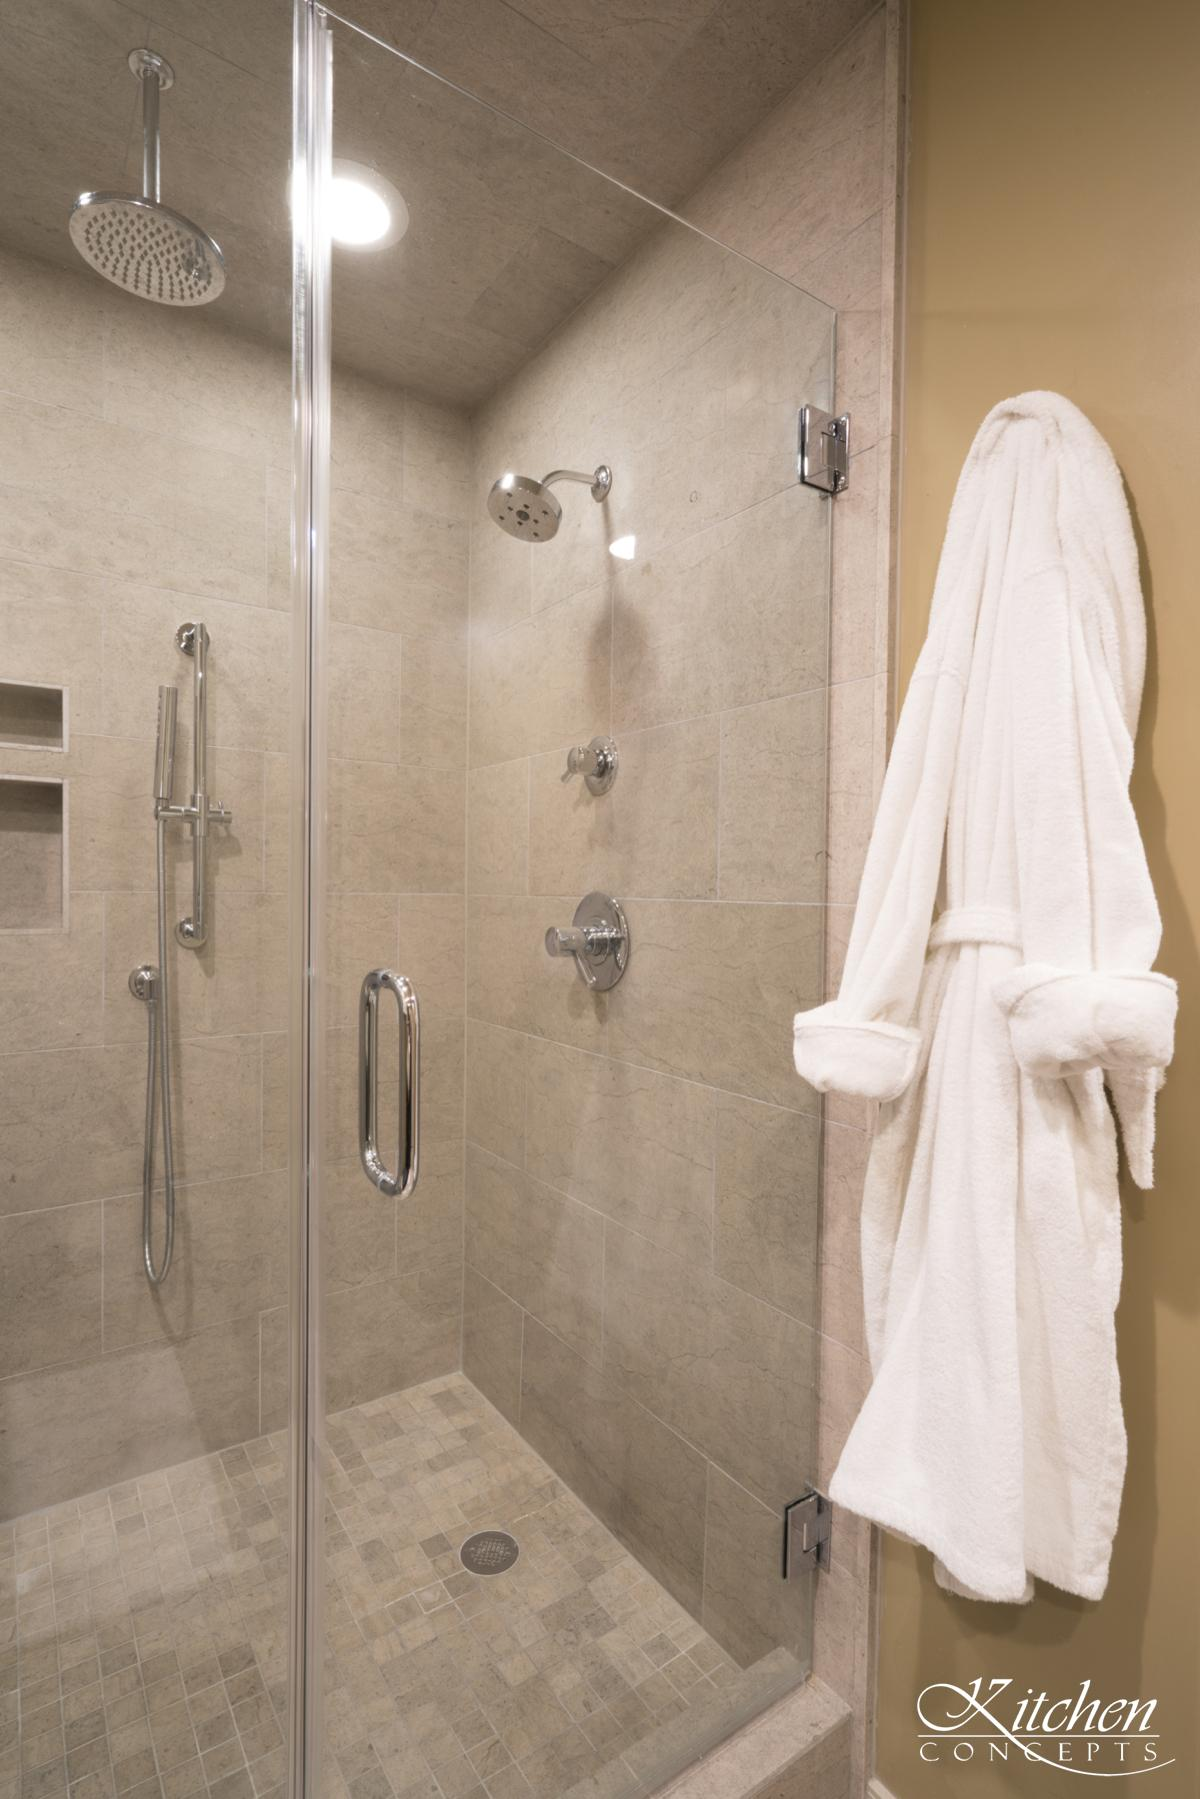 Bathroom Remodel With Walk In Shower And Custom Cabinets